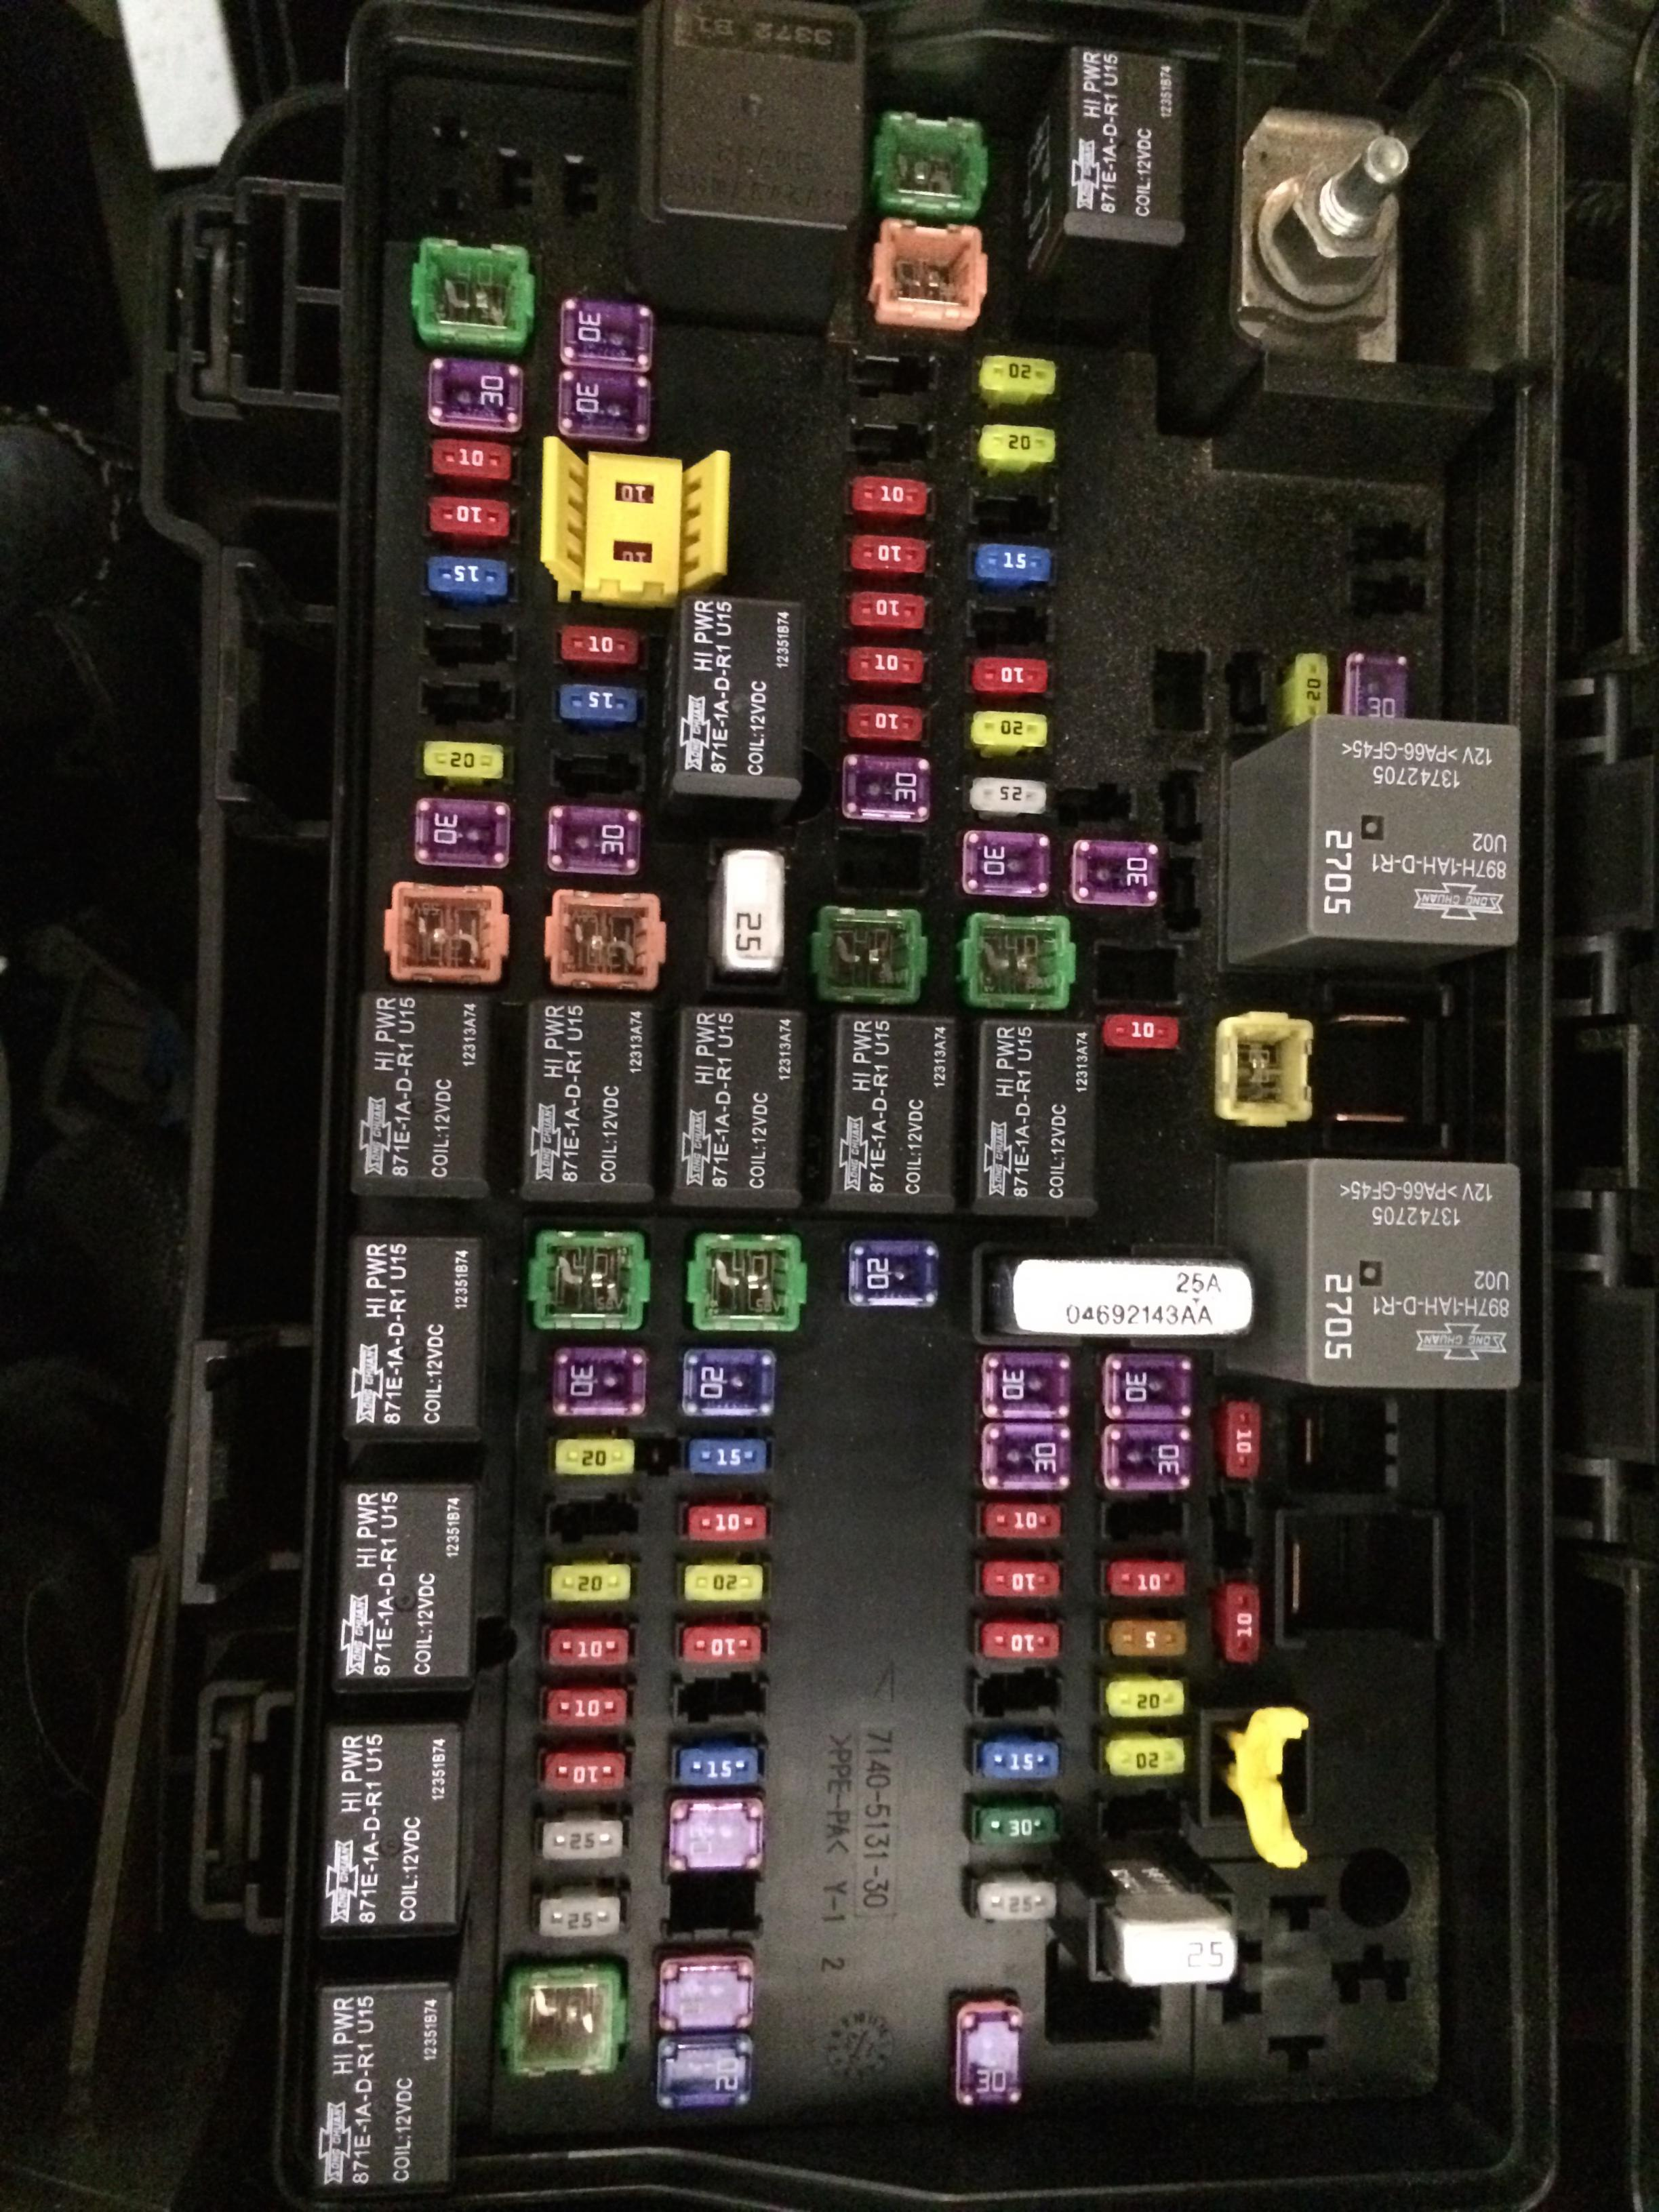 2013 Ram Fuse Box - Wiring Diagram